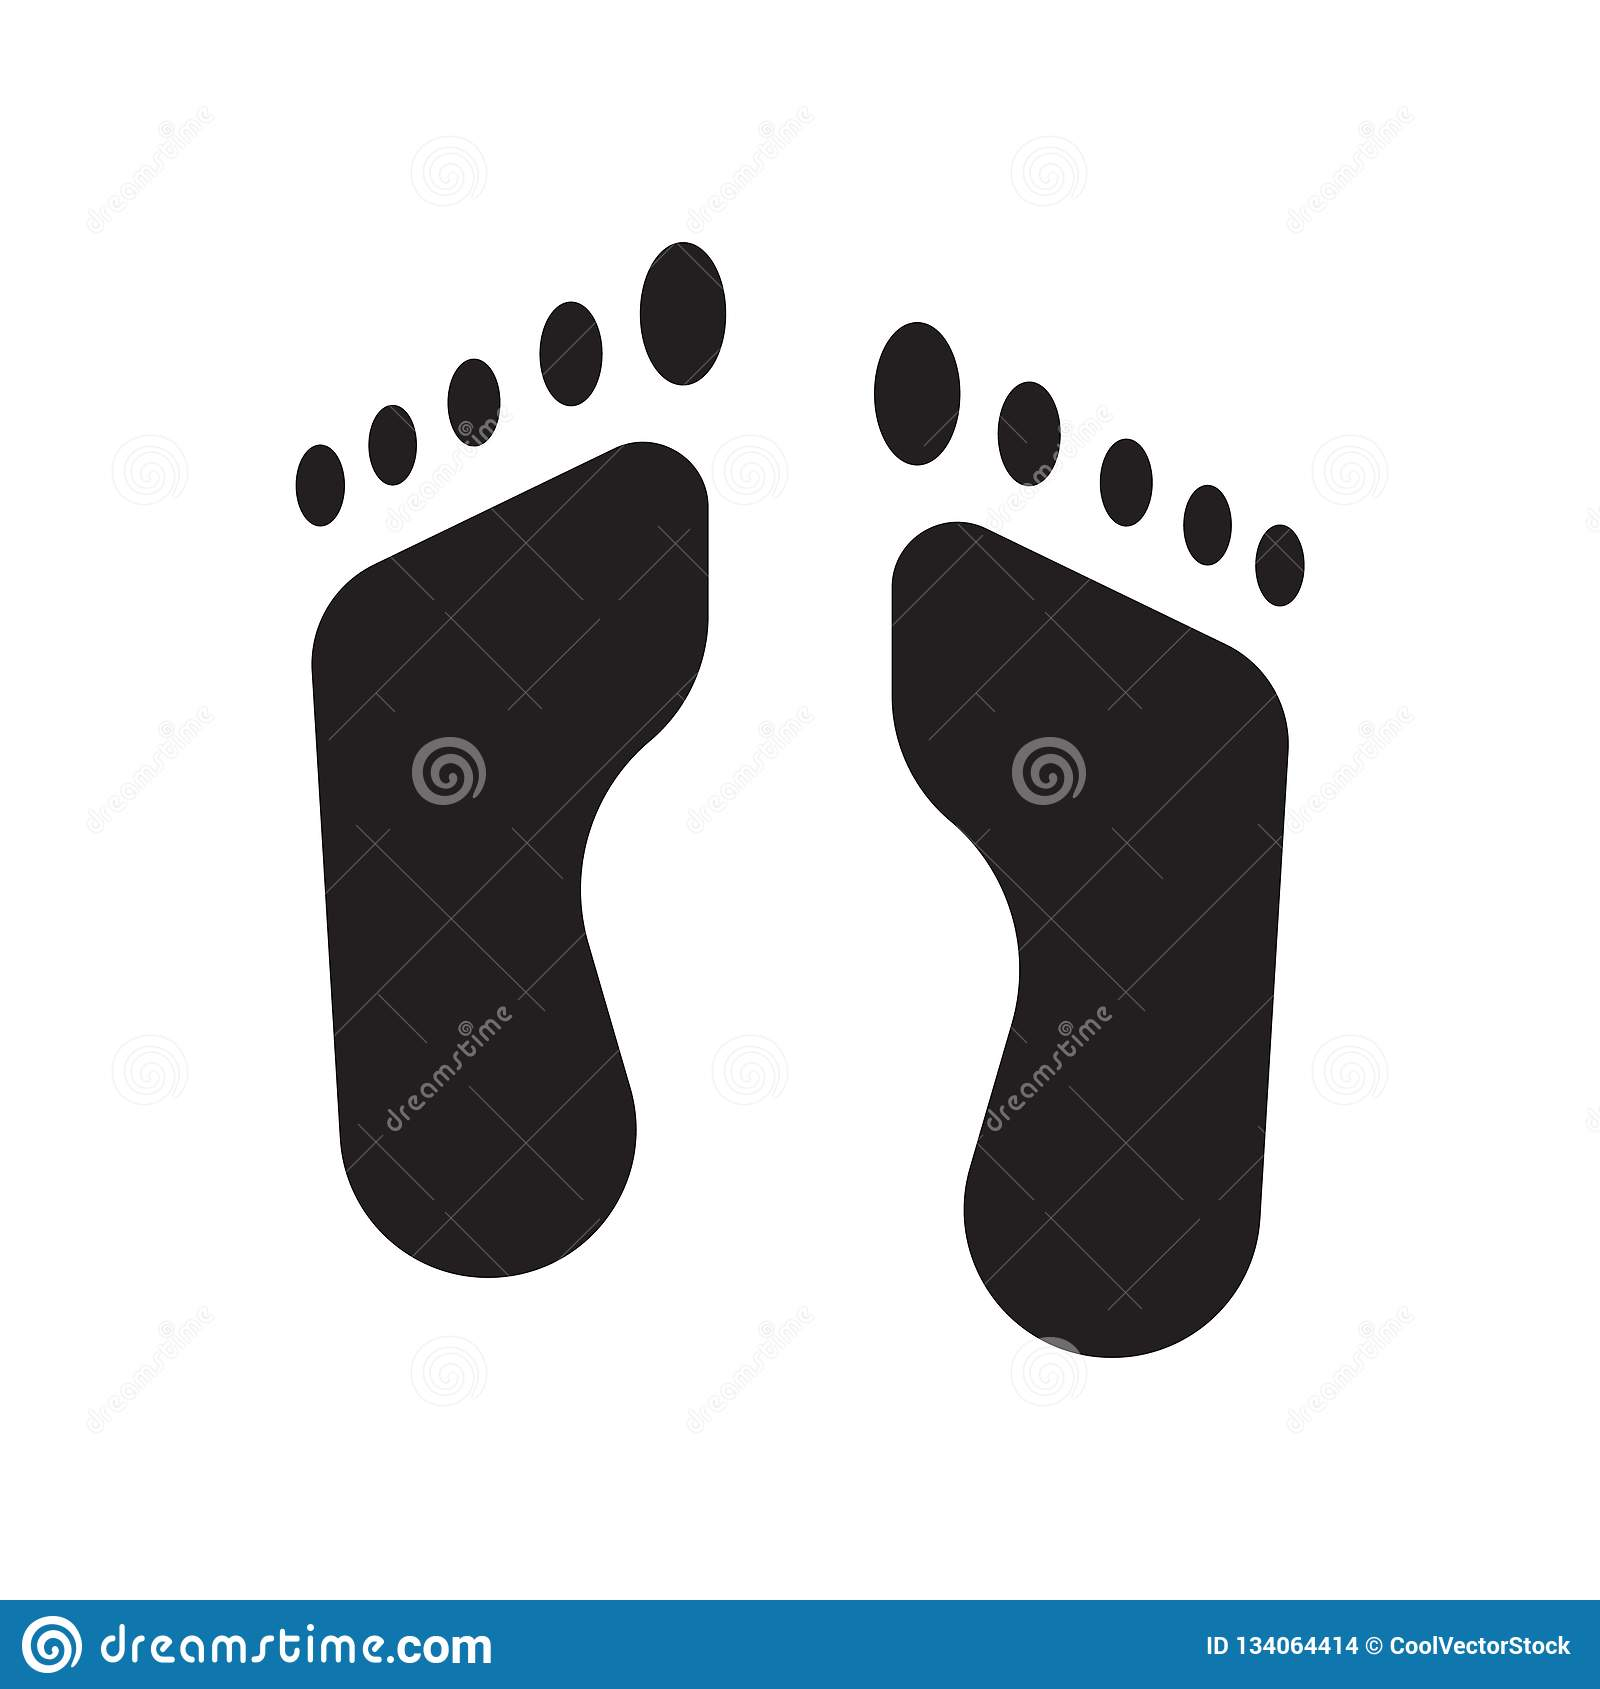 Footprint icon vector isolated on white background, Footprint sign , medical health symbols